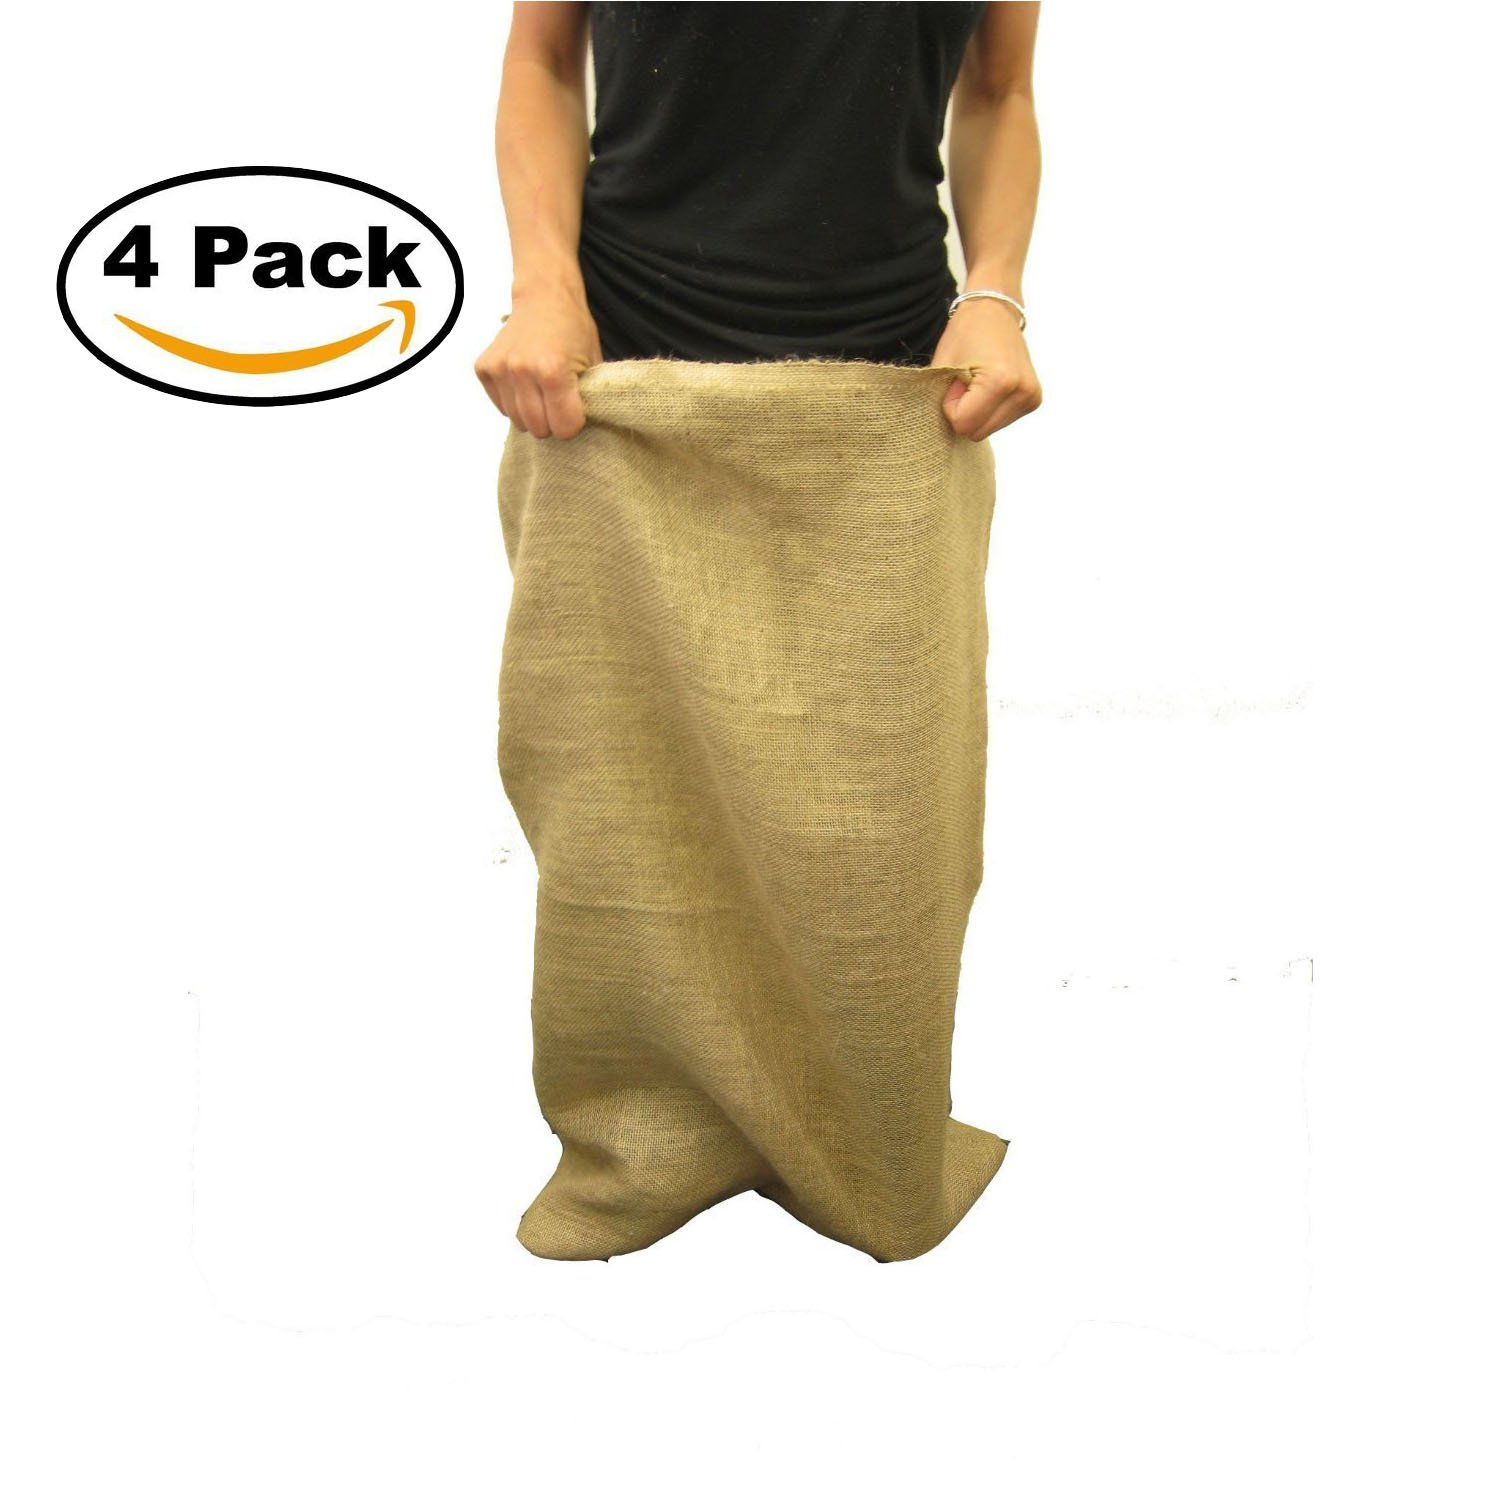 LA Linen Burlap Potato Sacks 23x40, Pack 4 by The Great Sack race